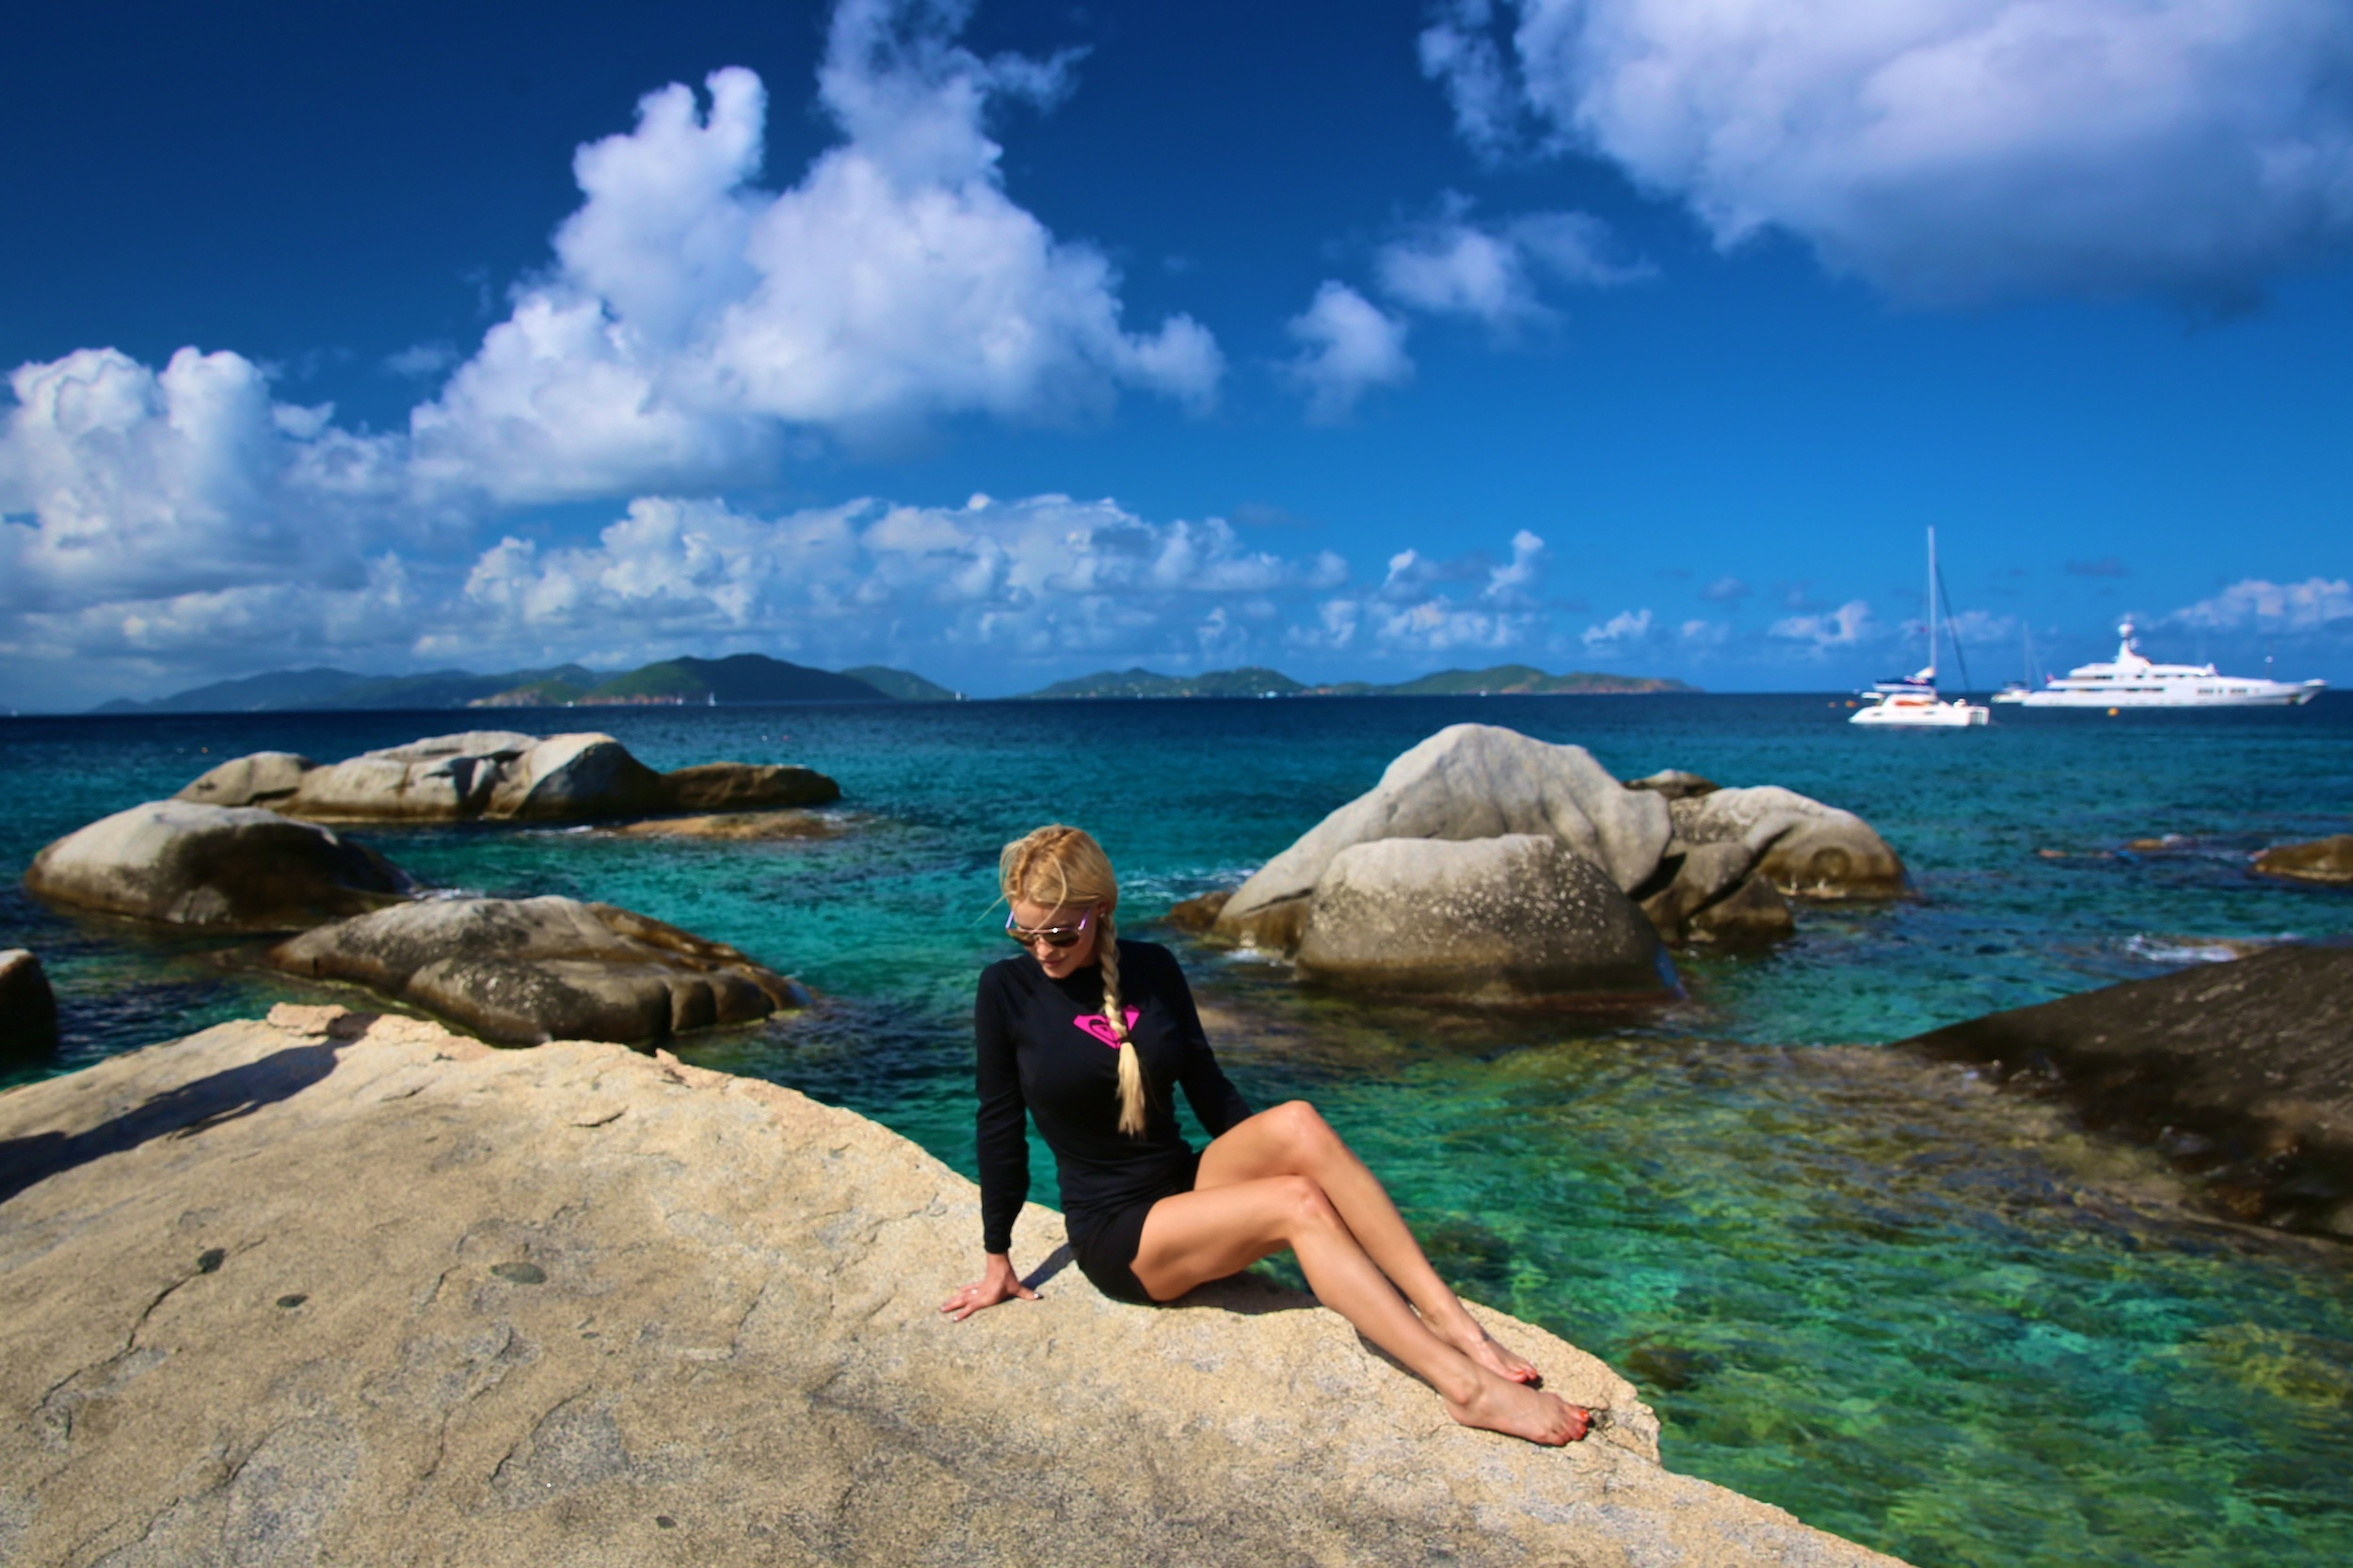 Misha at Virgin Gorda